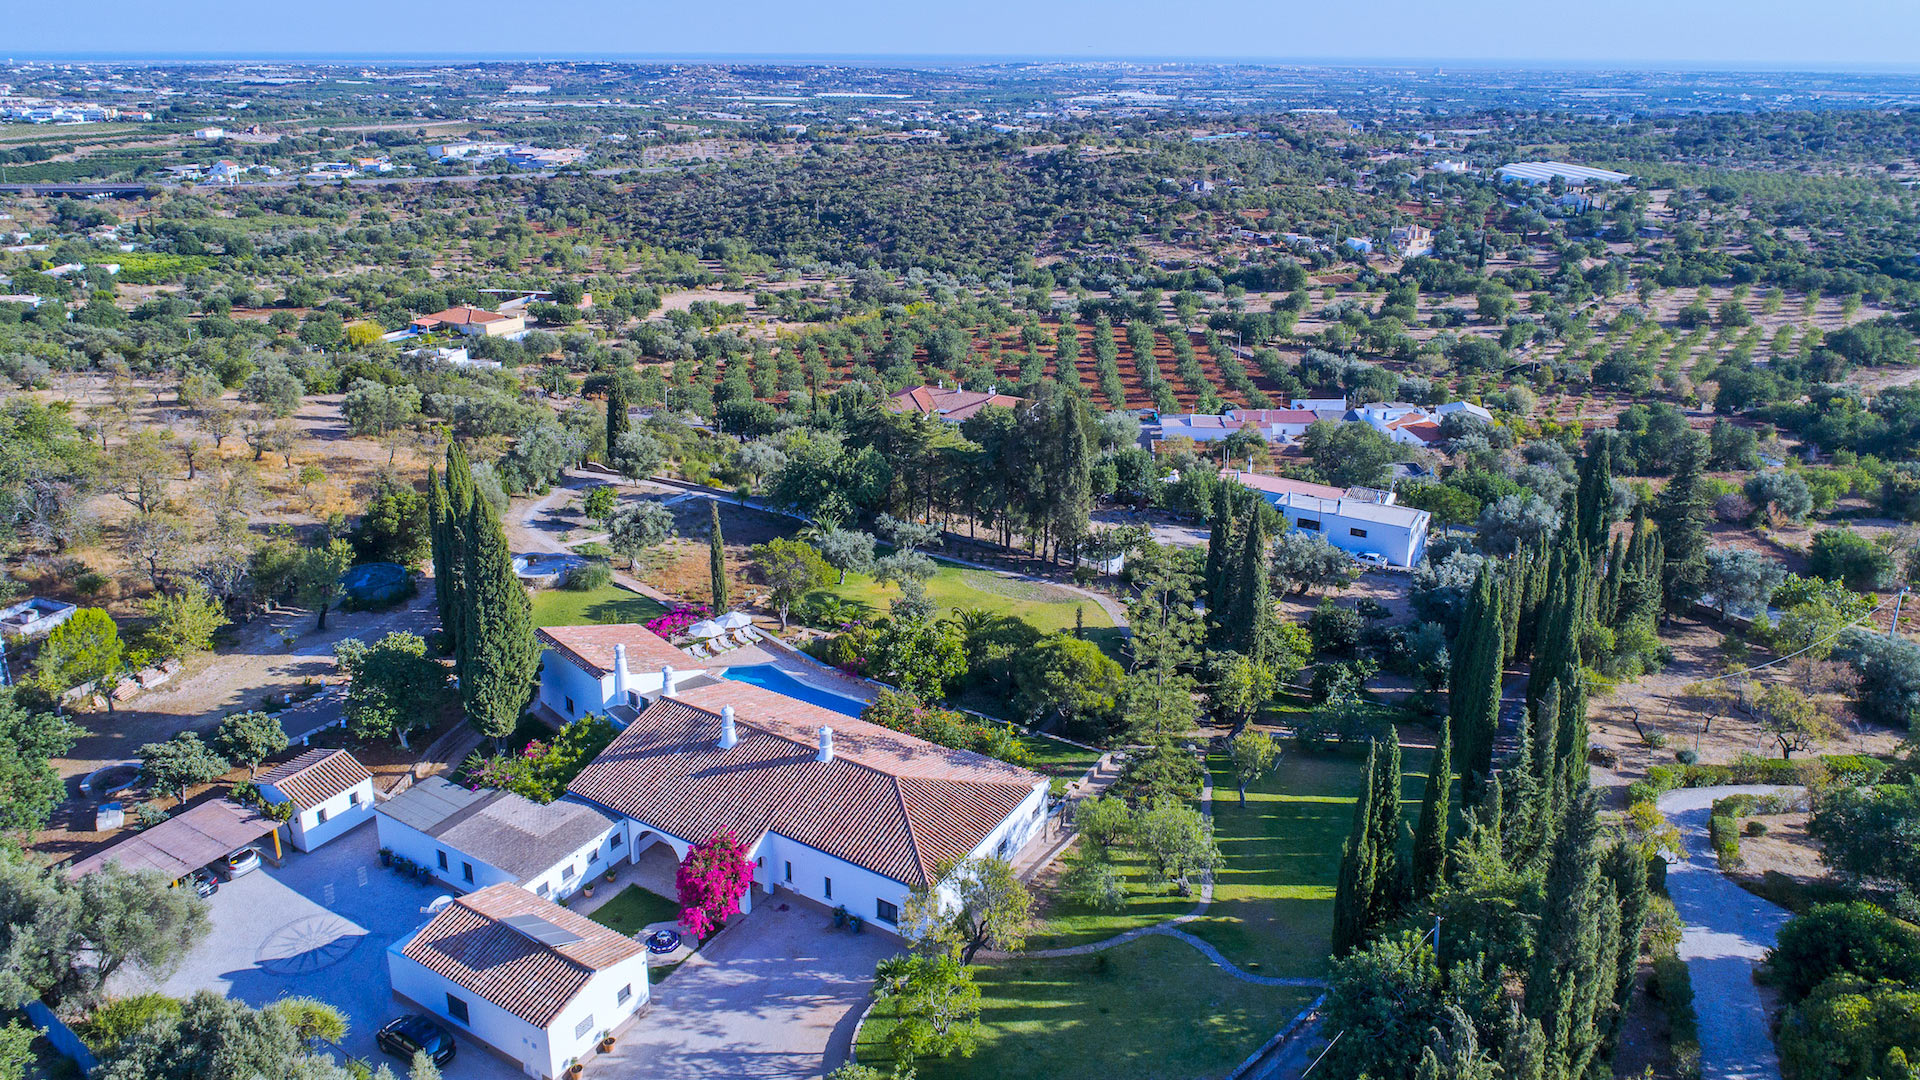 Villa Villa Cypress, Rental in Algarve